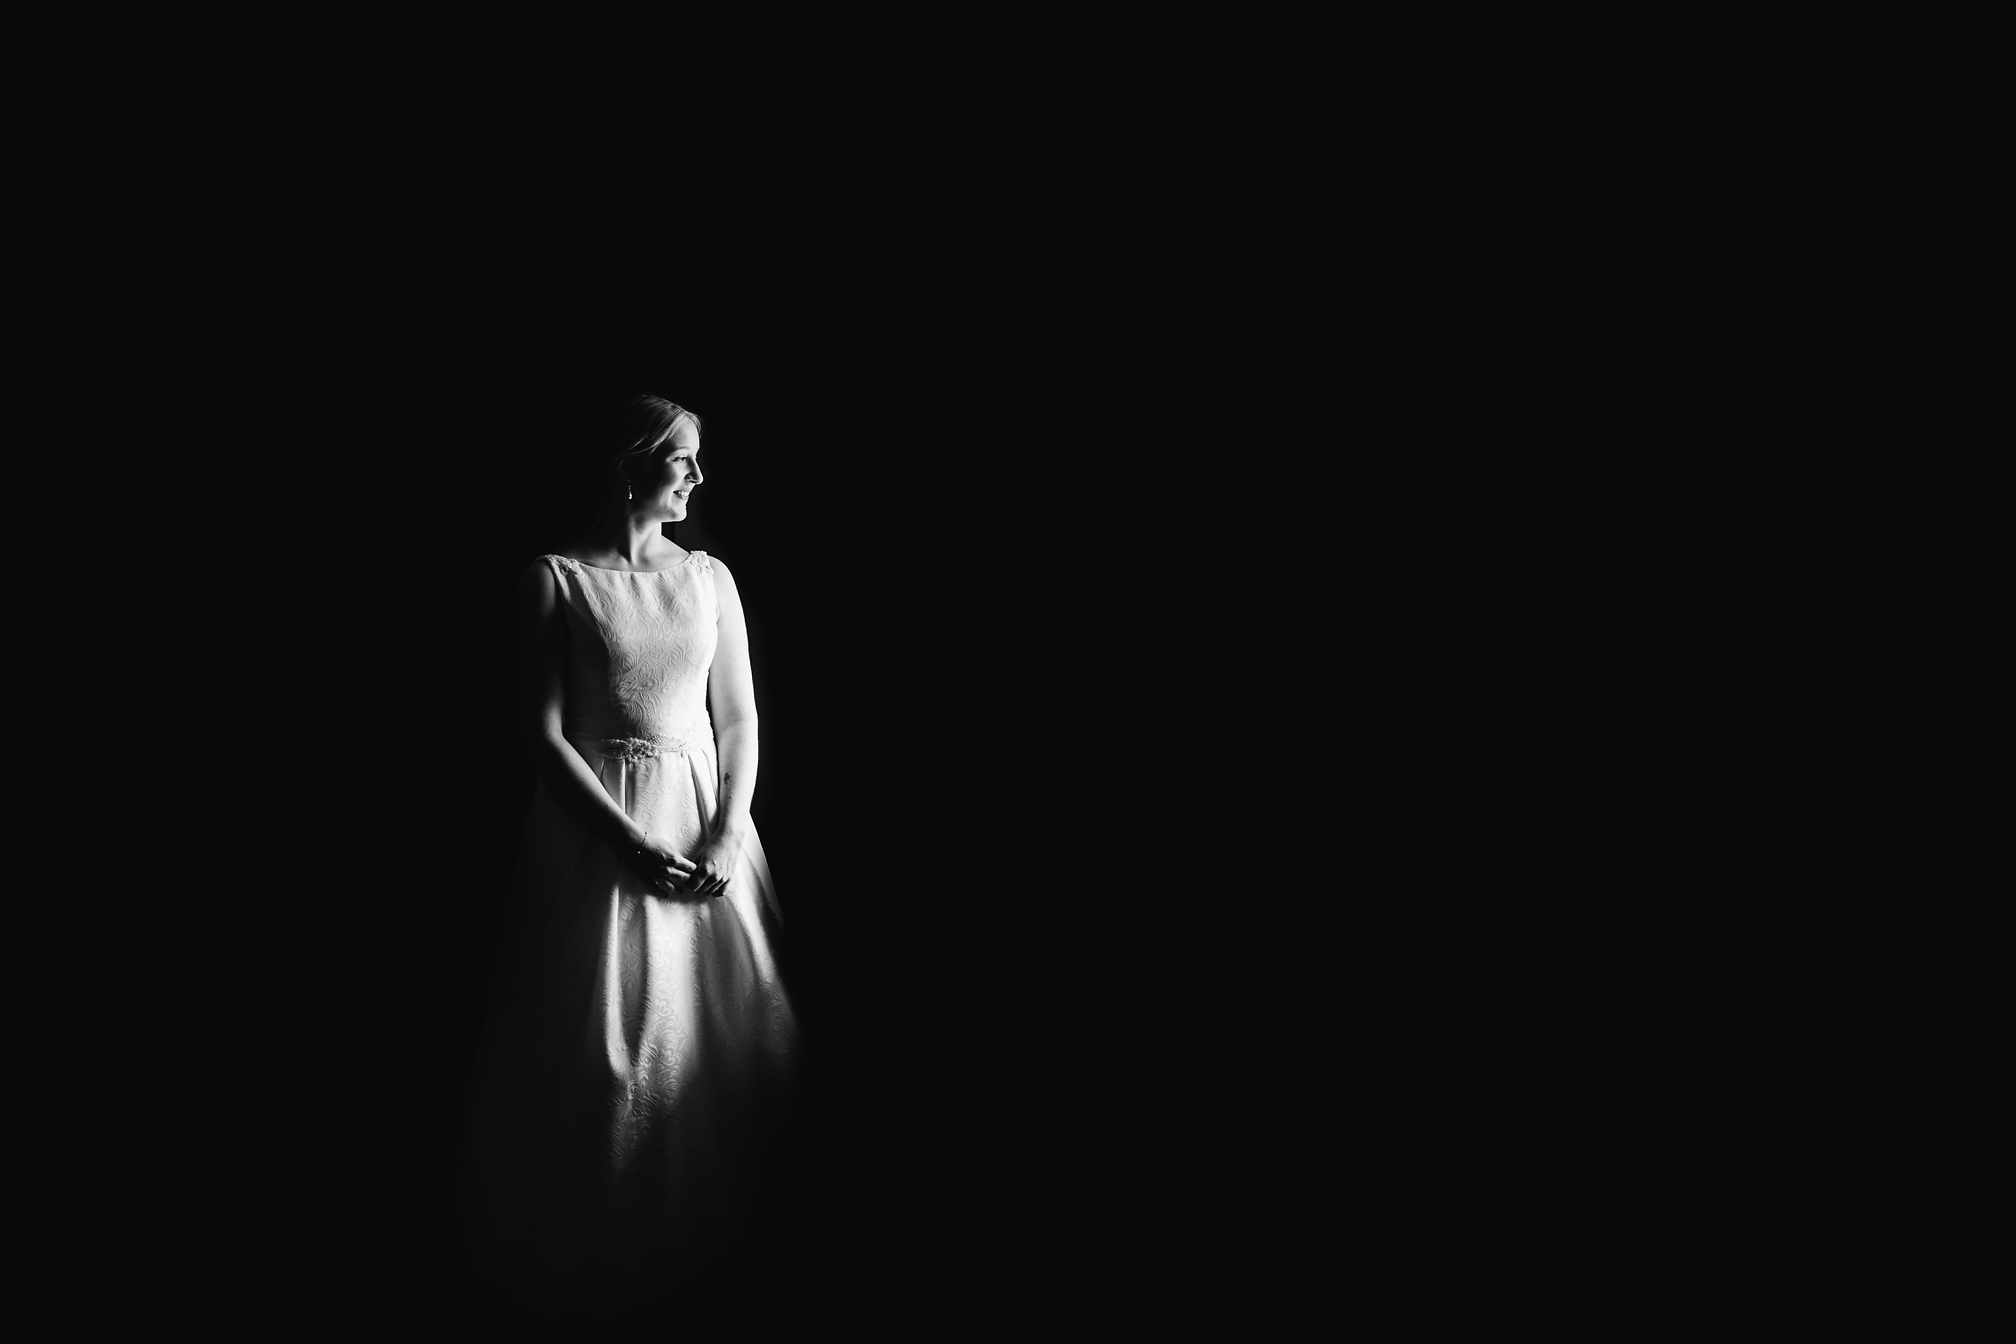 Black and white bridal portrait using window light